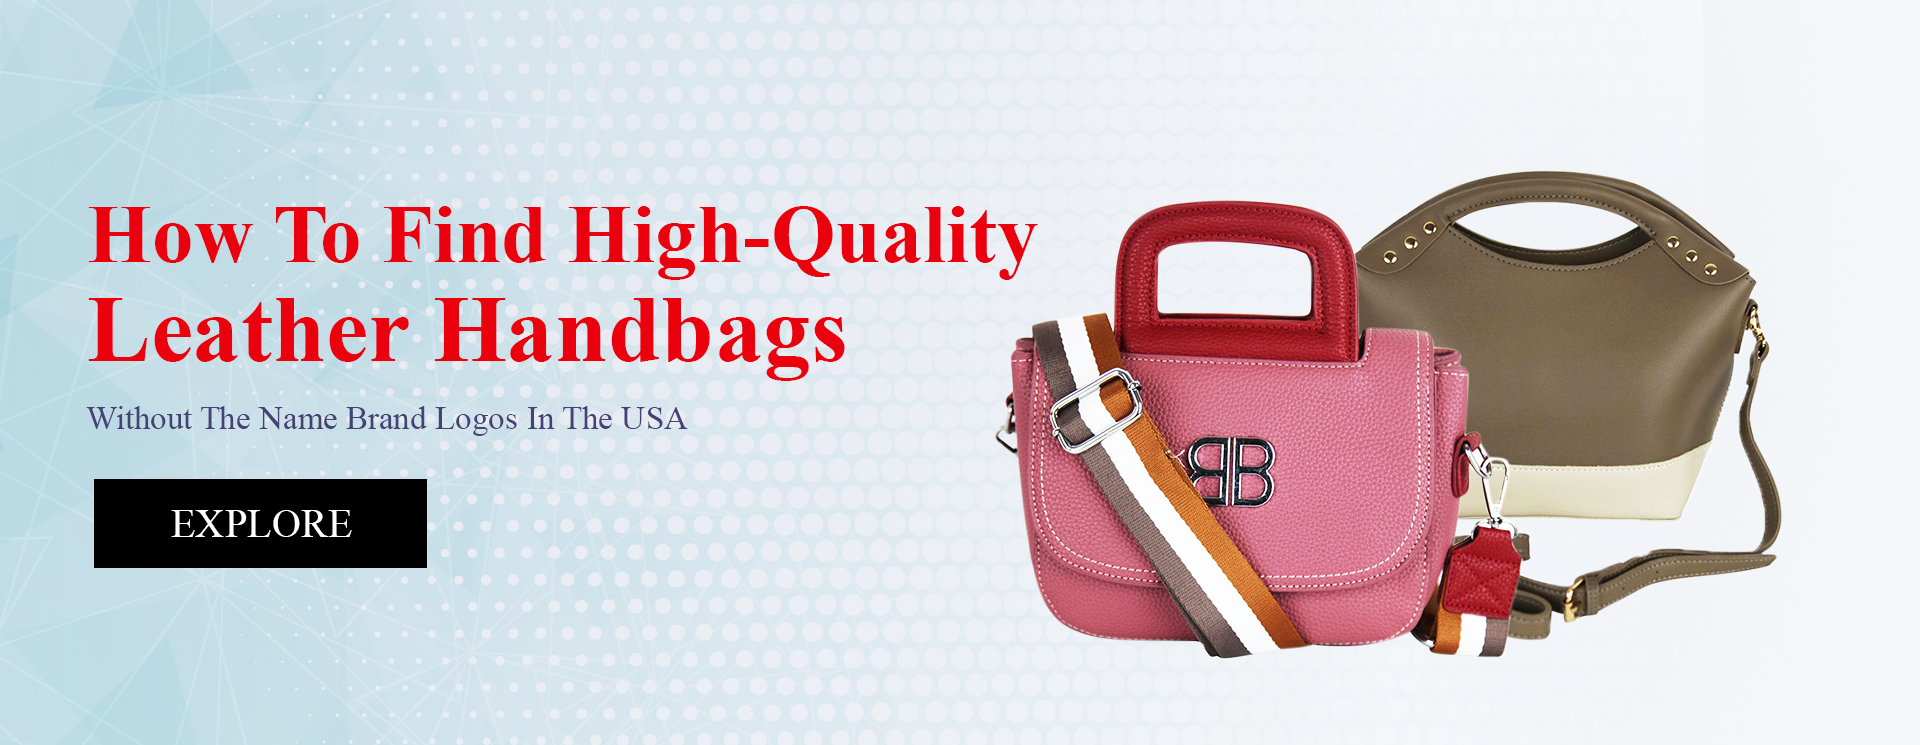 How To Find High-Quality Leather Handbags Without The Name Brand Logos In The USA